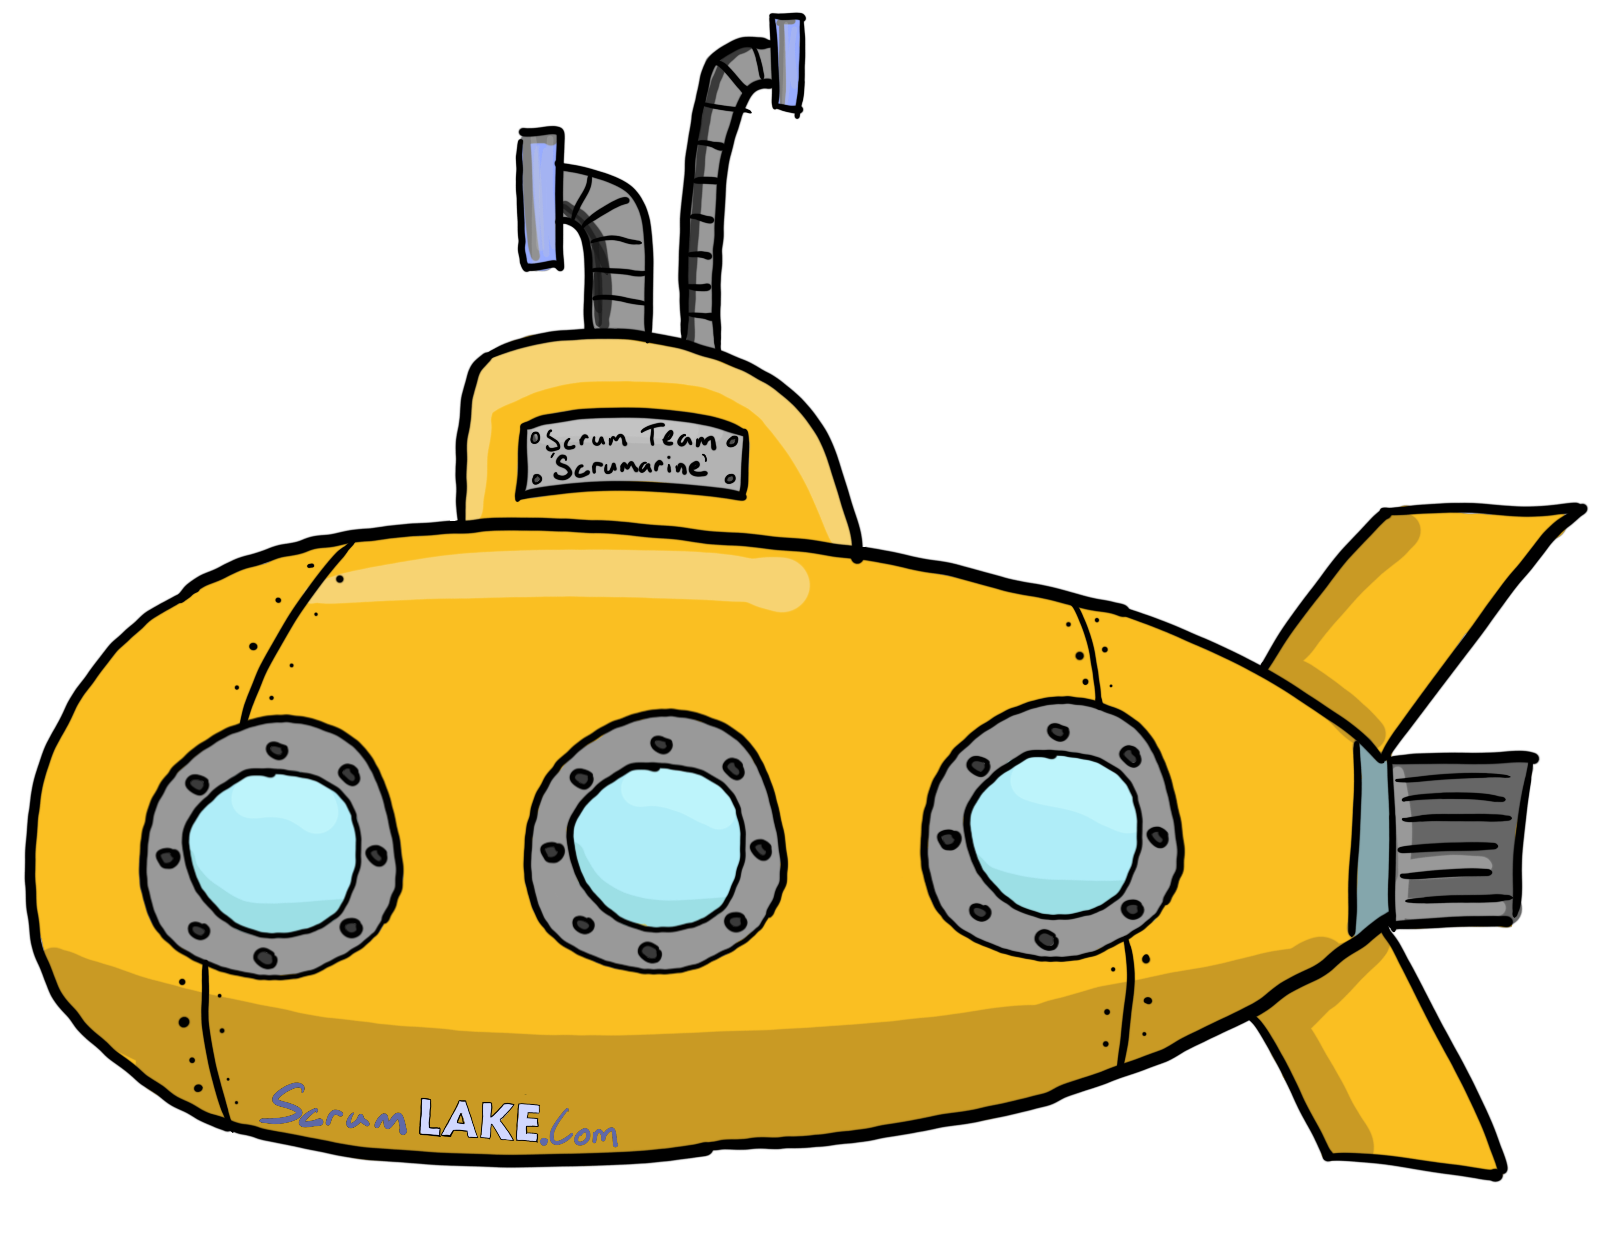 A Scrum Team is like a submarine